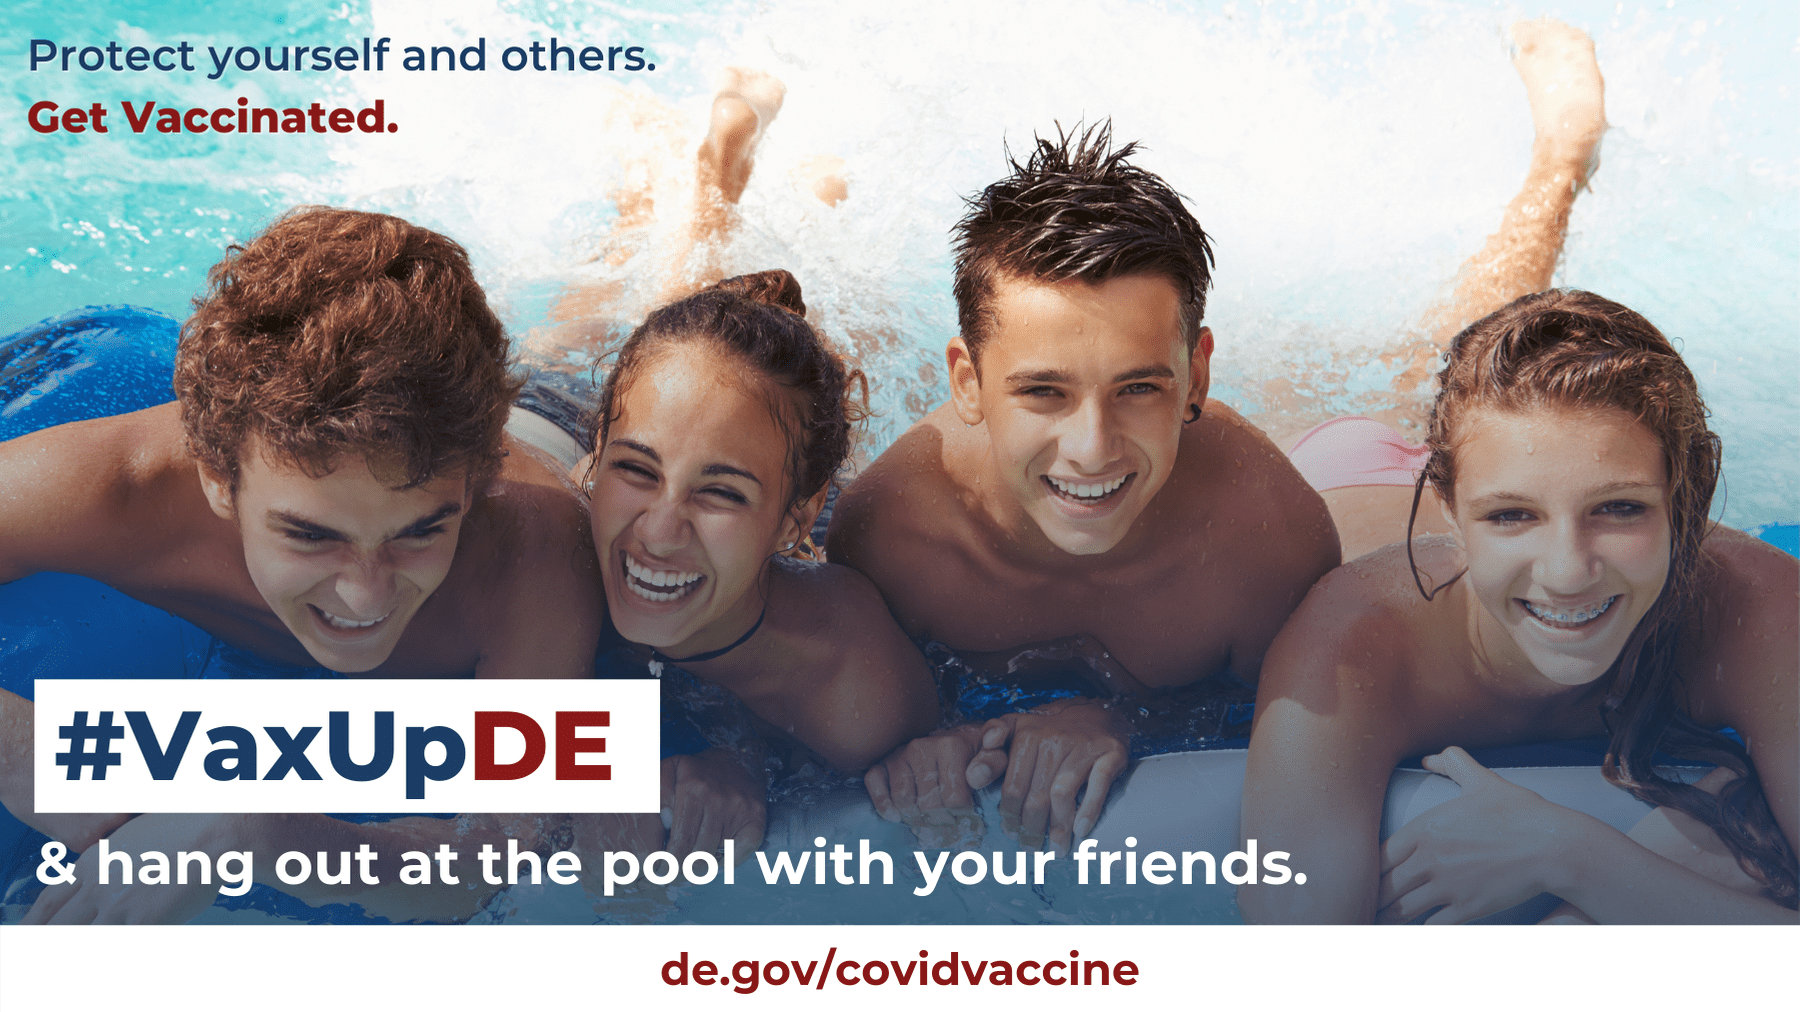 VaxUpDE. Protect yourself and others. Get Vaccinated. Teens swimming in a pool together in the summer sun.